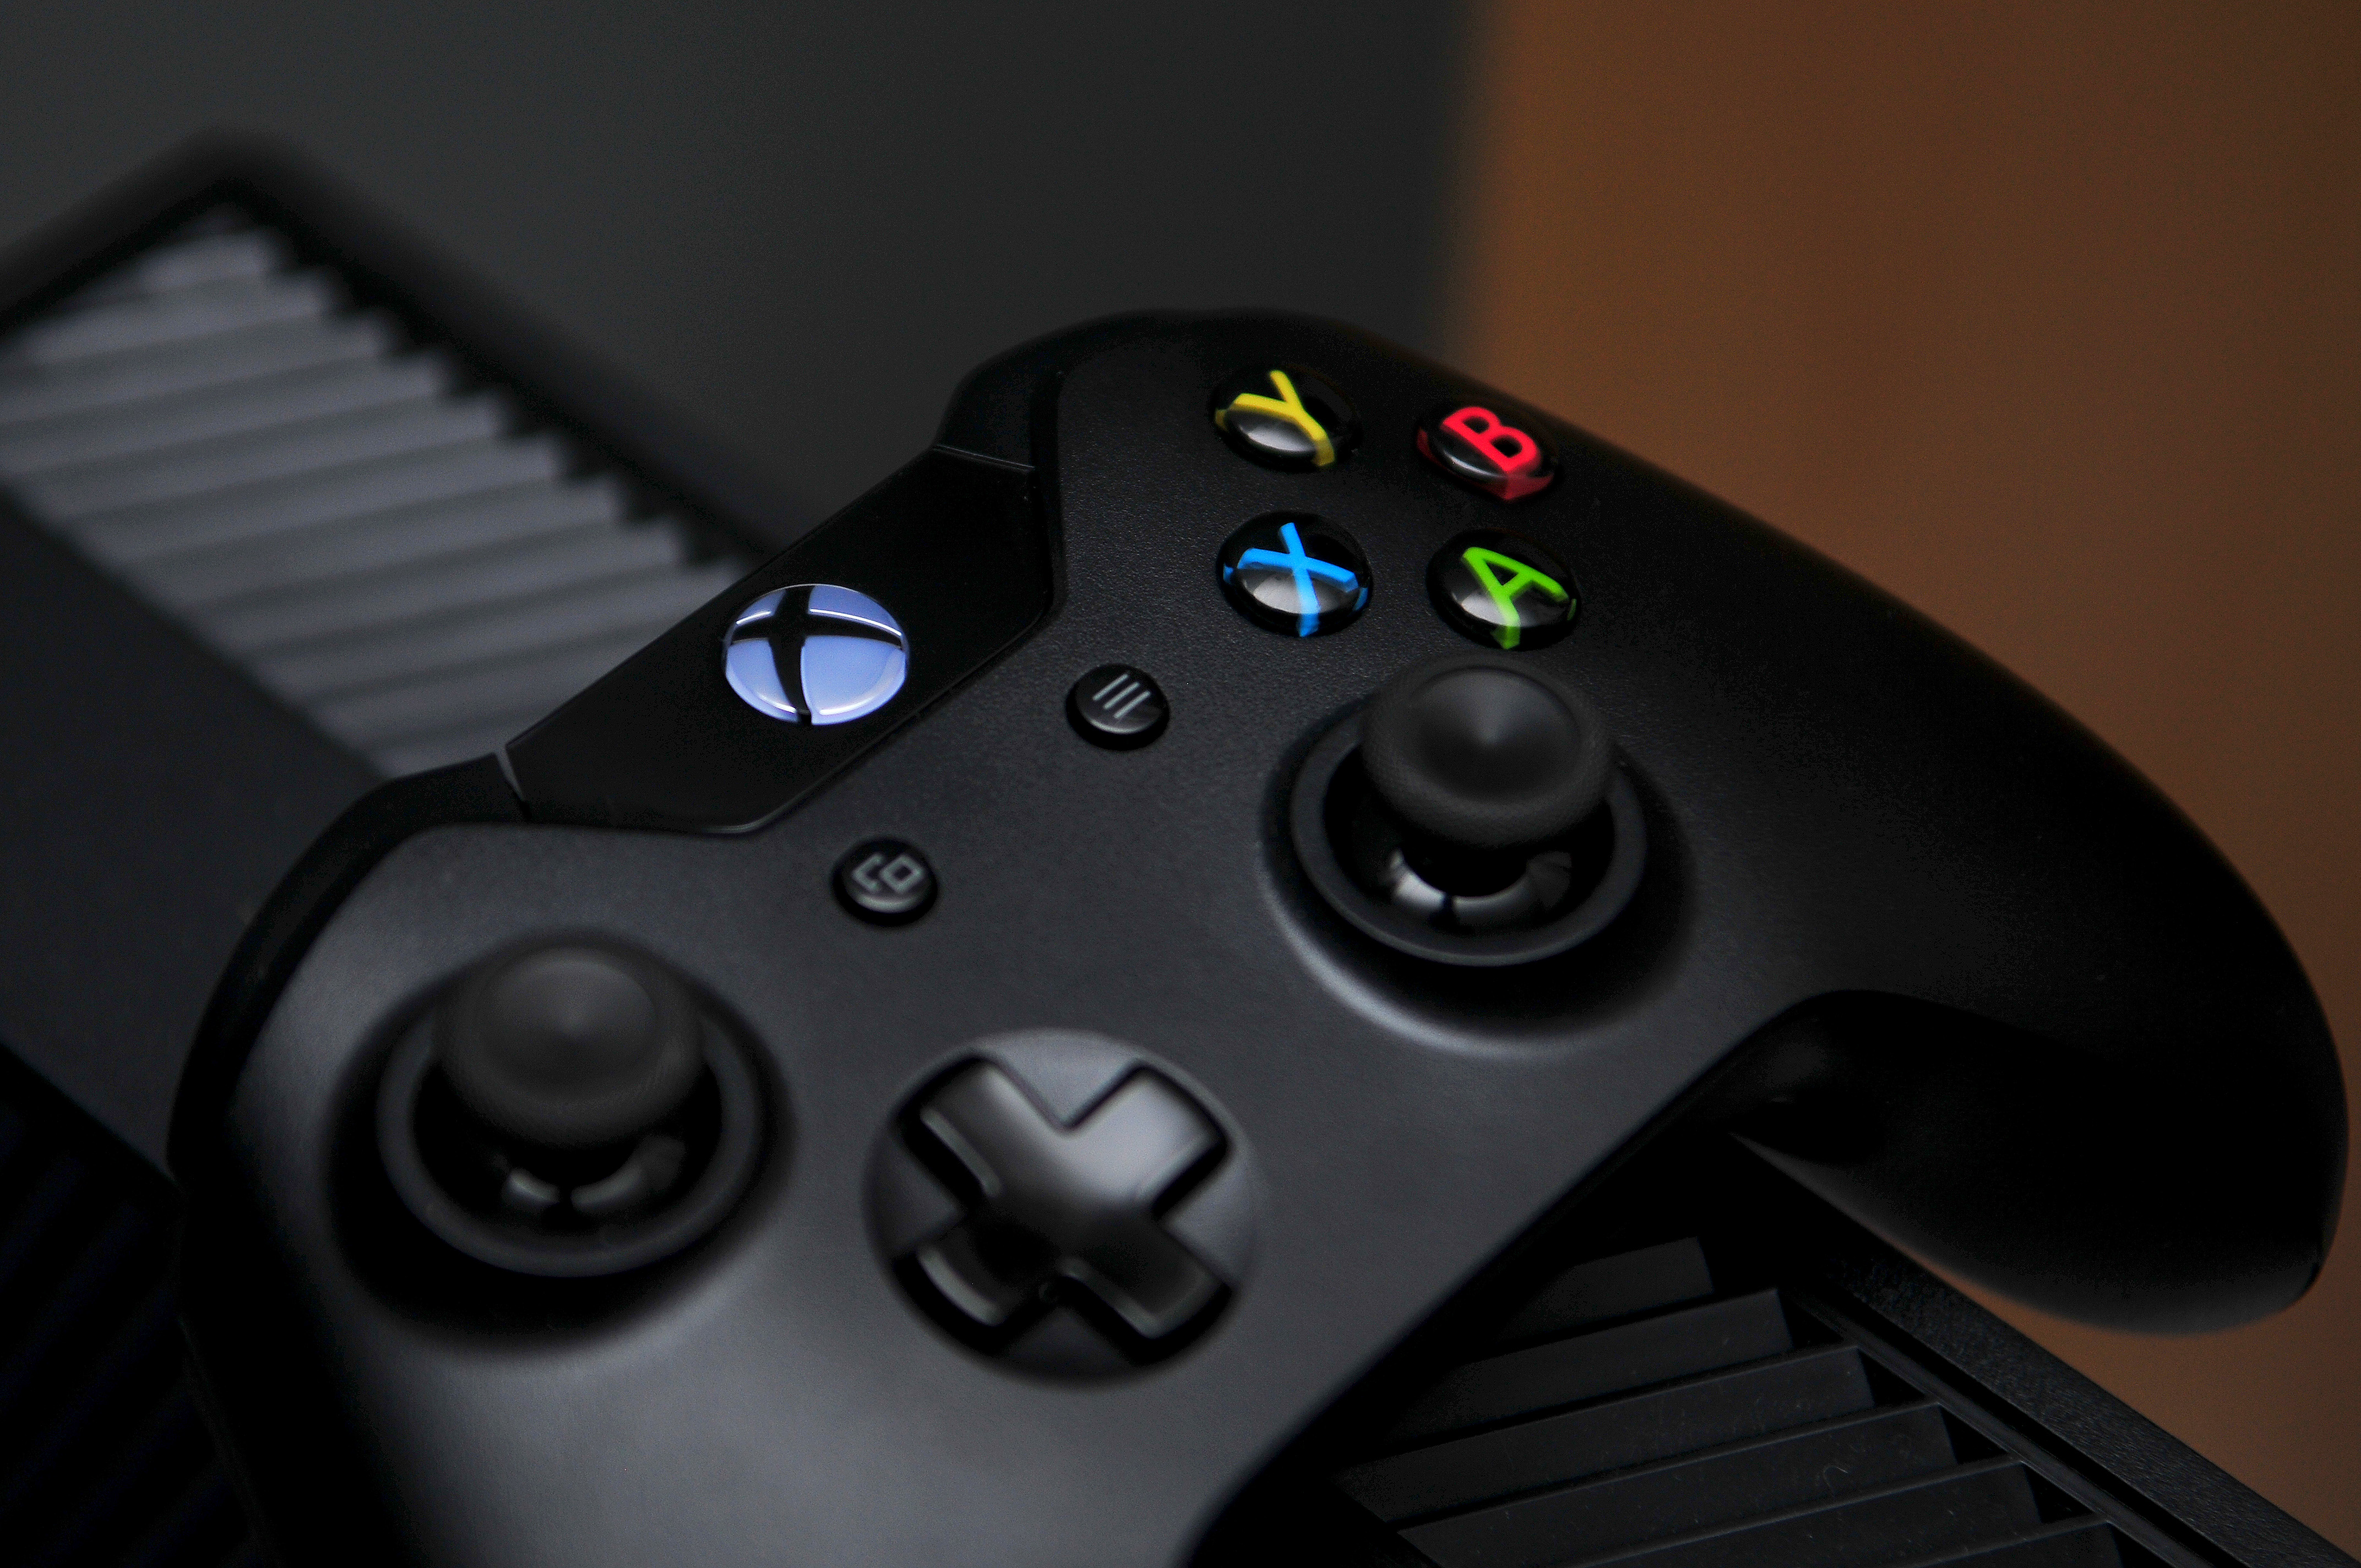 File:Controller-pad-afternoon-xbox (24326784755) jpg - Wikimedia Commons